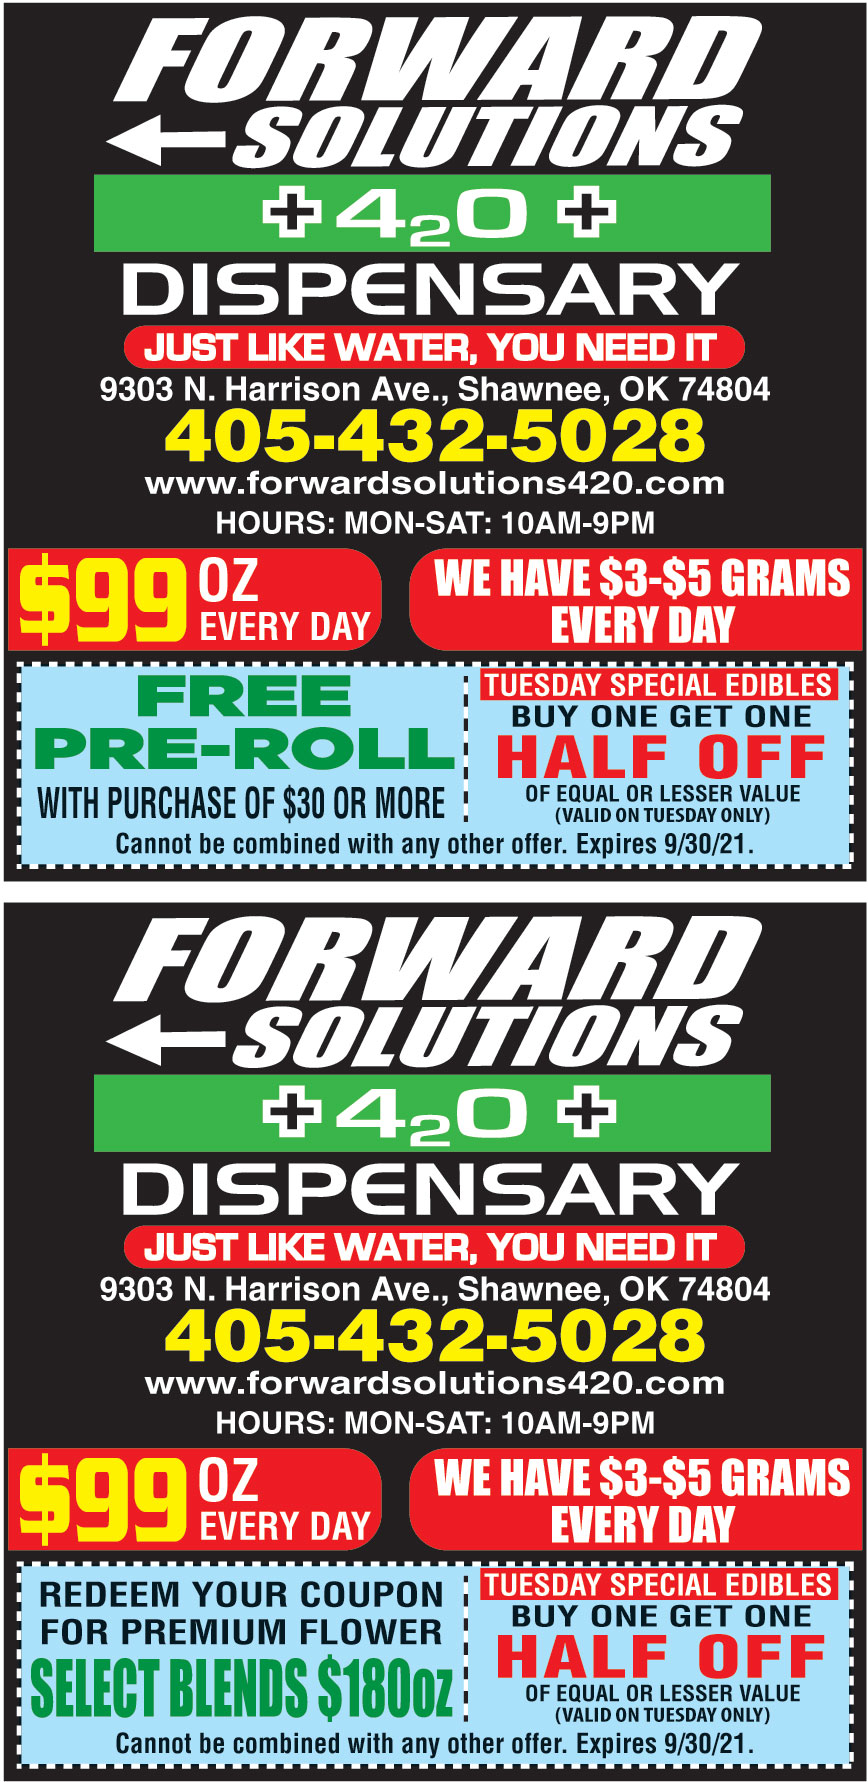 FORWARD SOLUTIONS 420